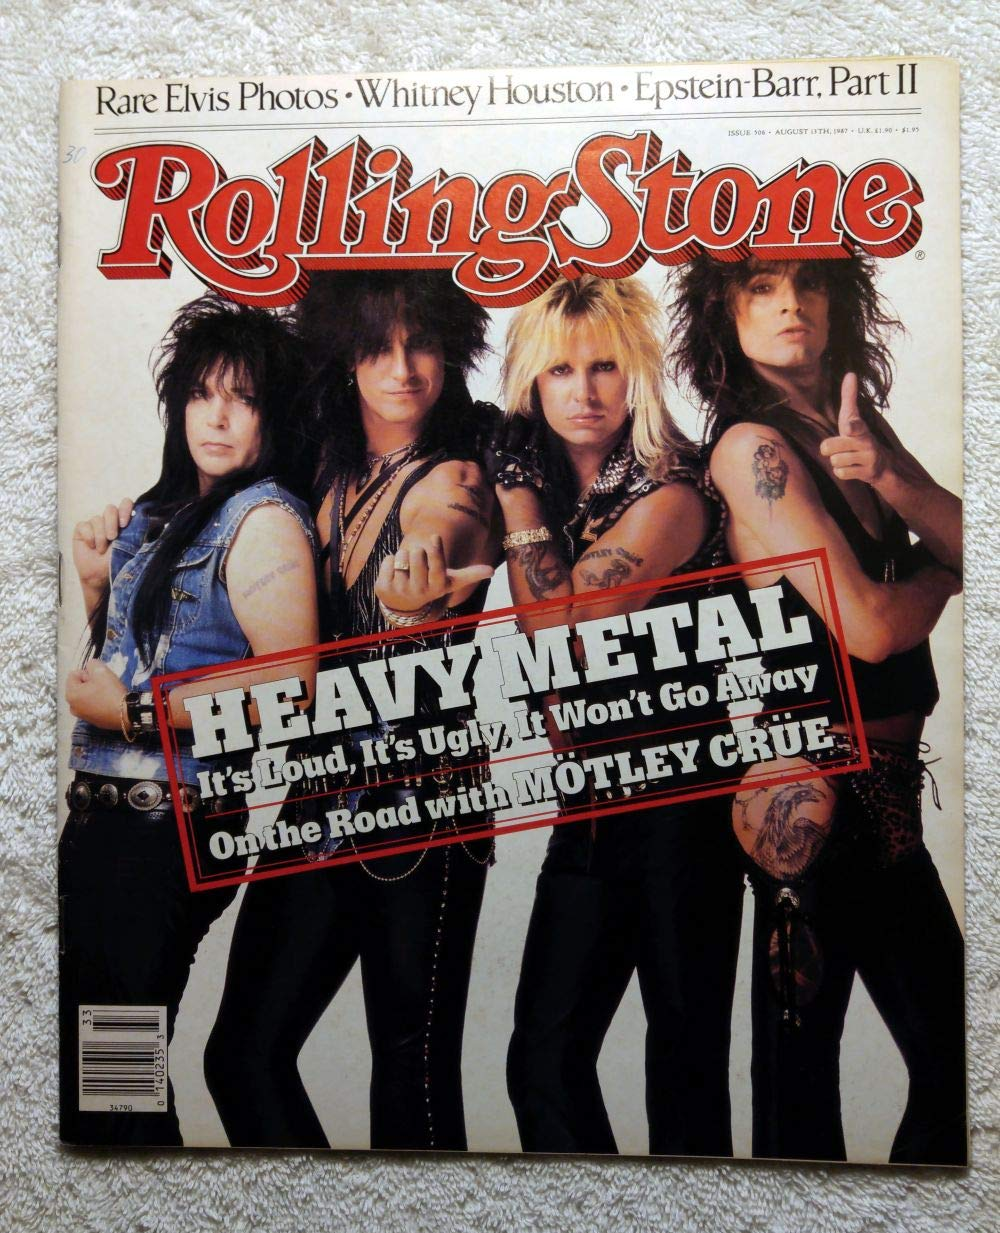 Mick Mars, Nikki Sixx, Vince Neil & Tommy Lee - Motley Crue - Rolling Stone Magazine - #506 - August 13, 1987 - No Address Label!